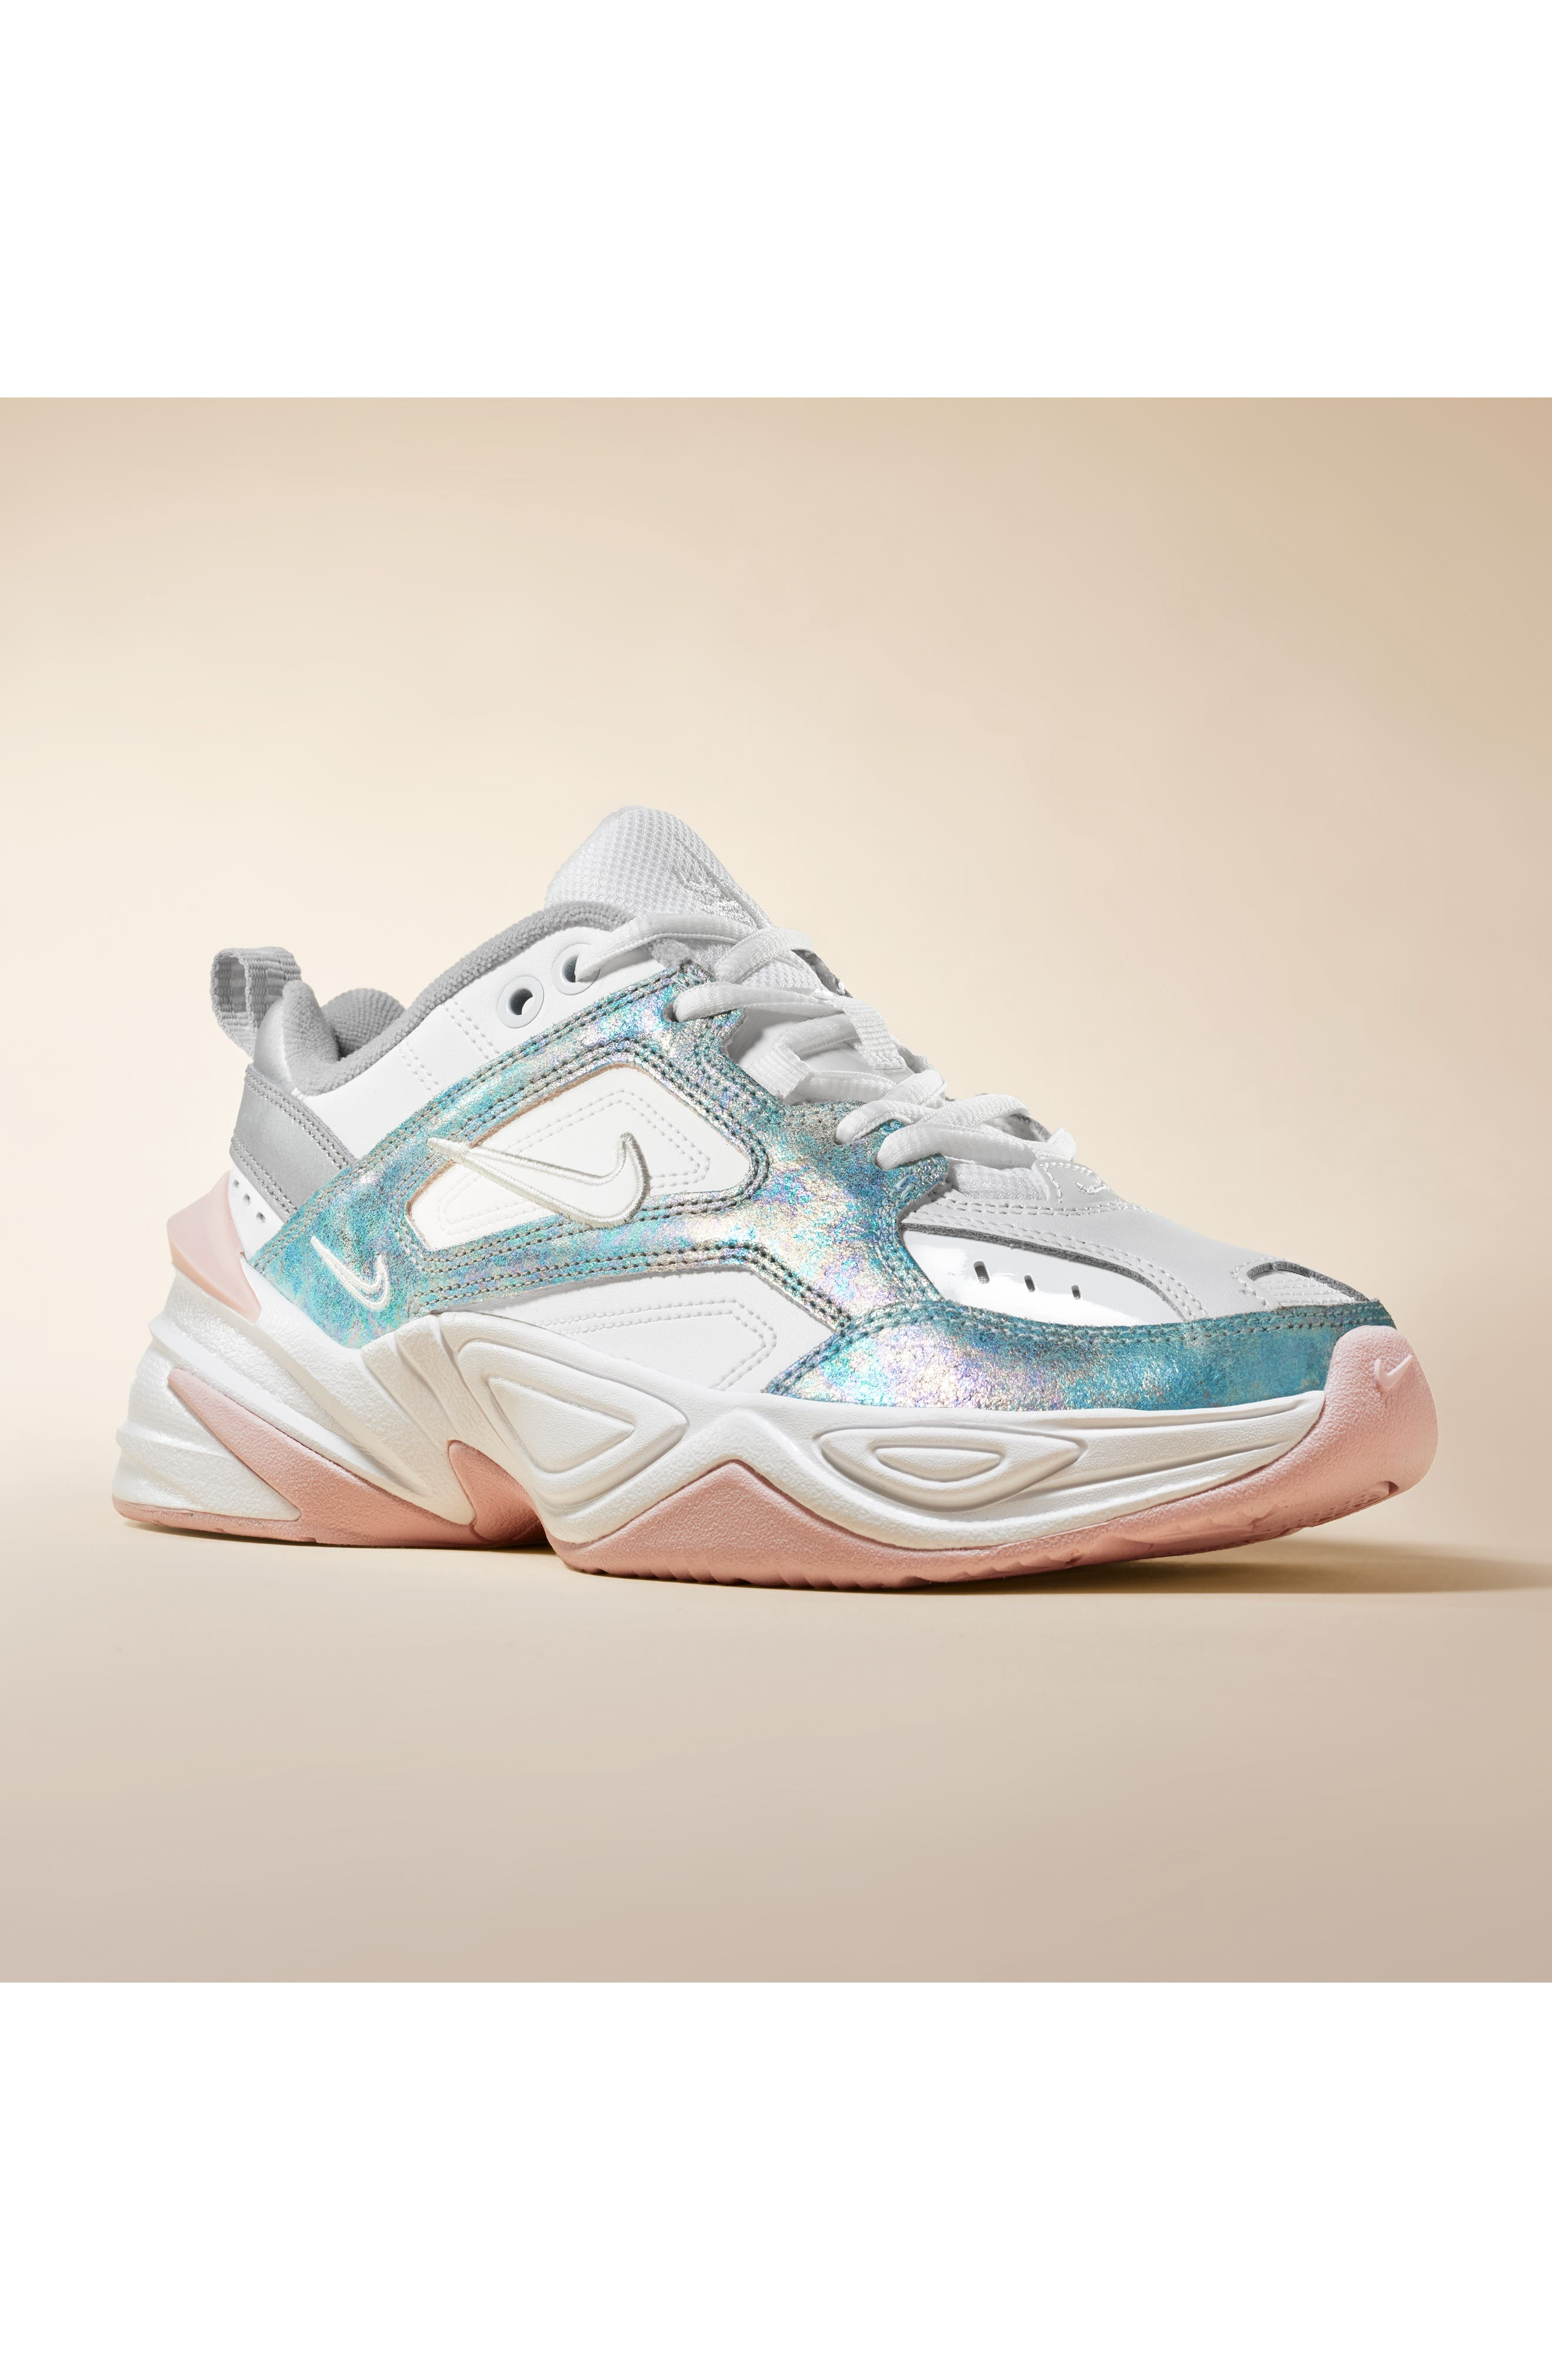 NIKE,                             M2K Tekno Sneaker,                             Alternate thumbnail 7, color,                             PLATINUM TINT/ CELERY/ GREY